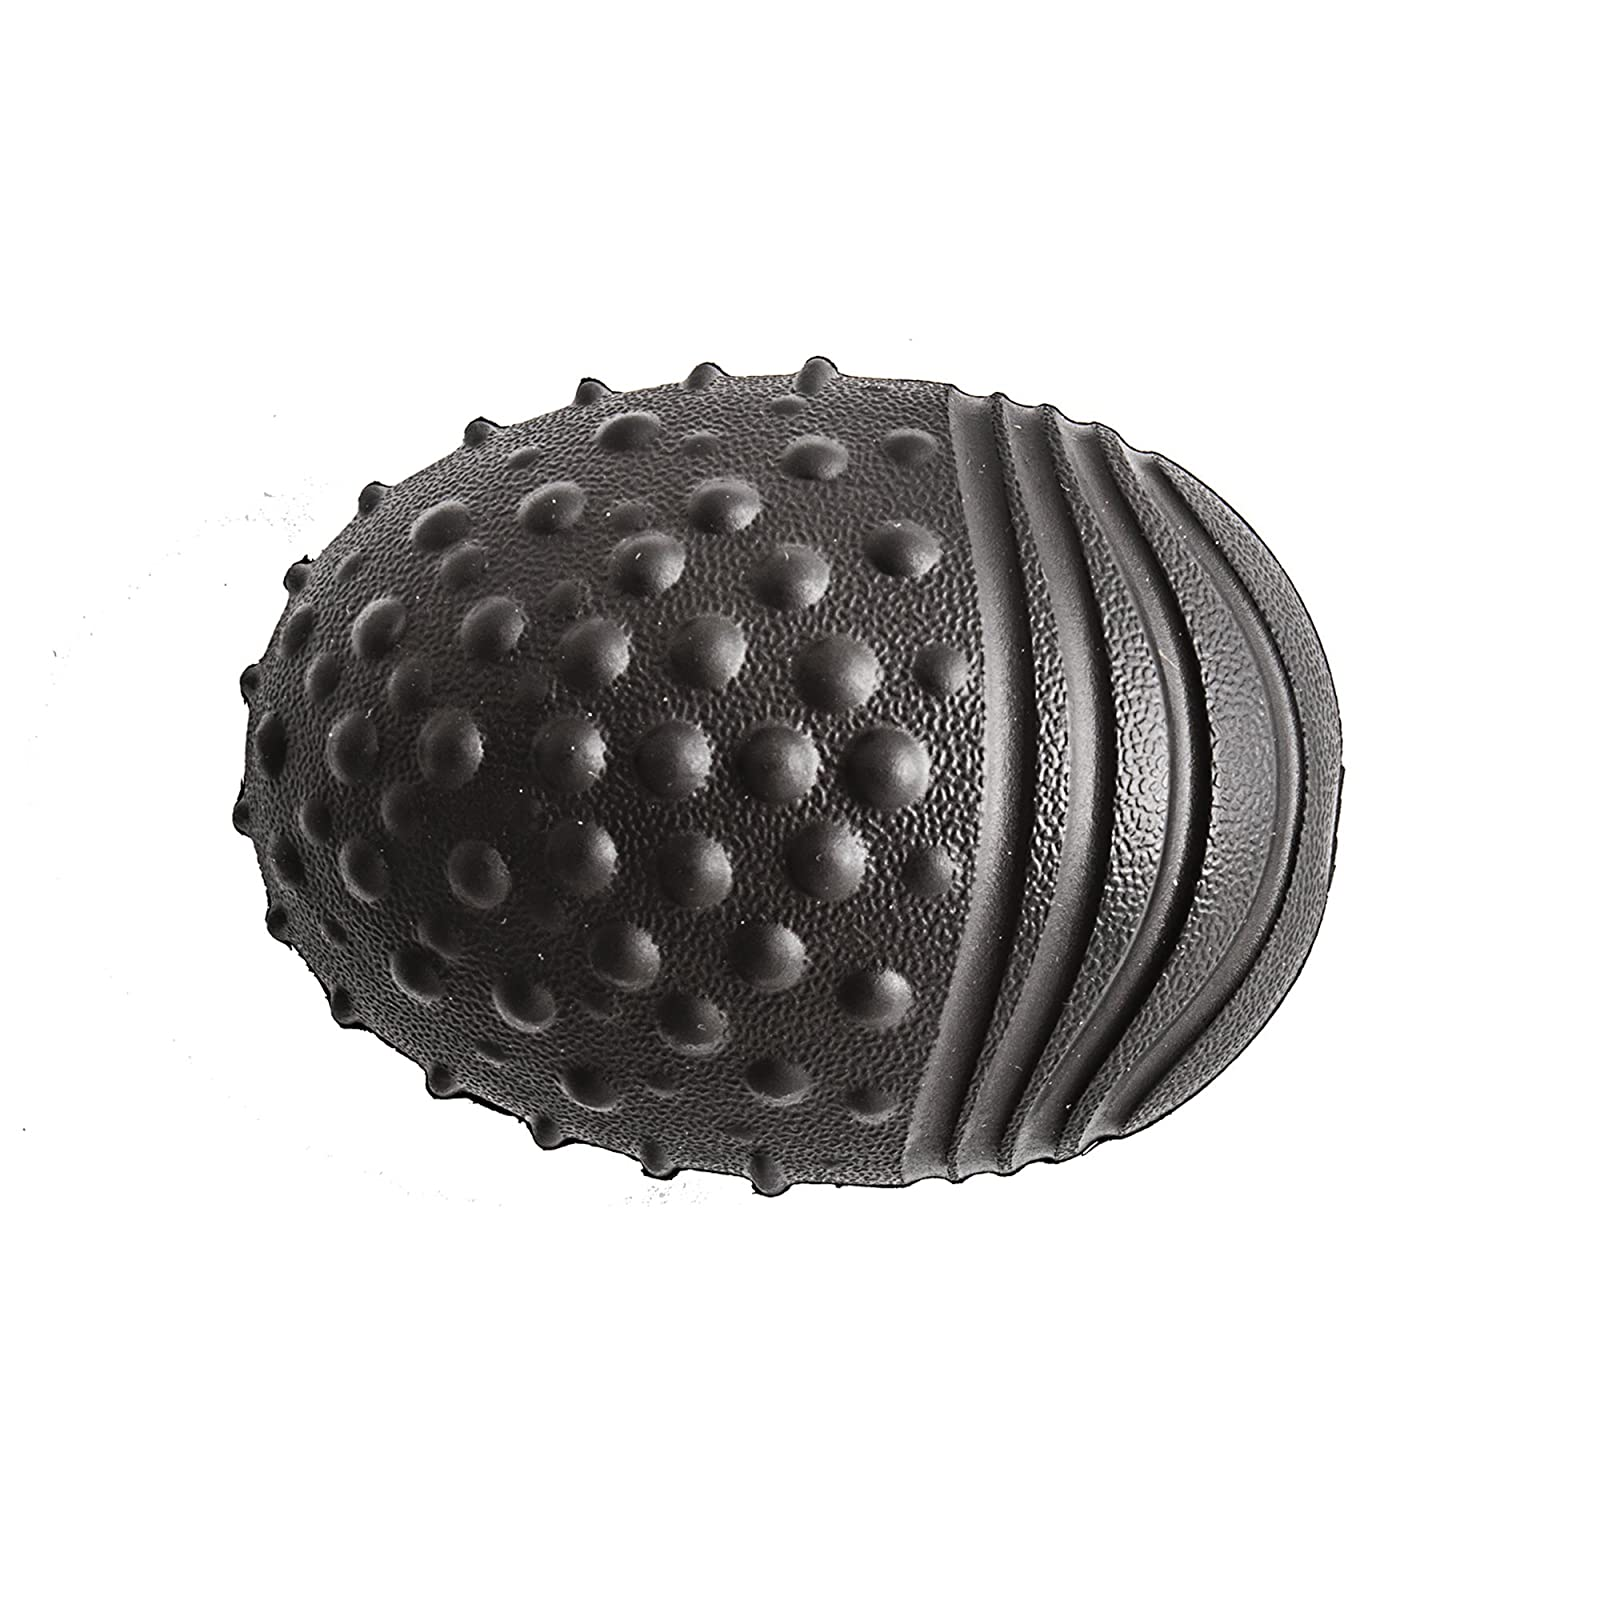 Playology Pebble Chew Dog Toy Bacon Scent black Large - 2